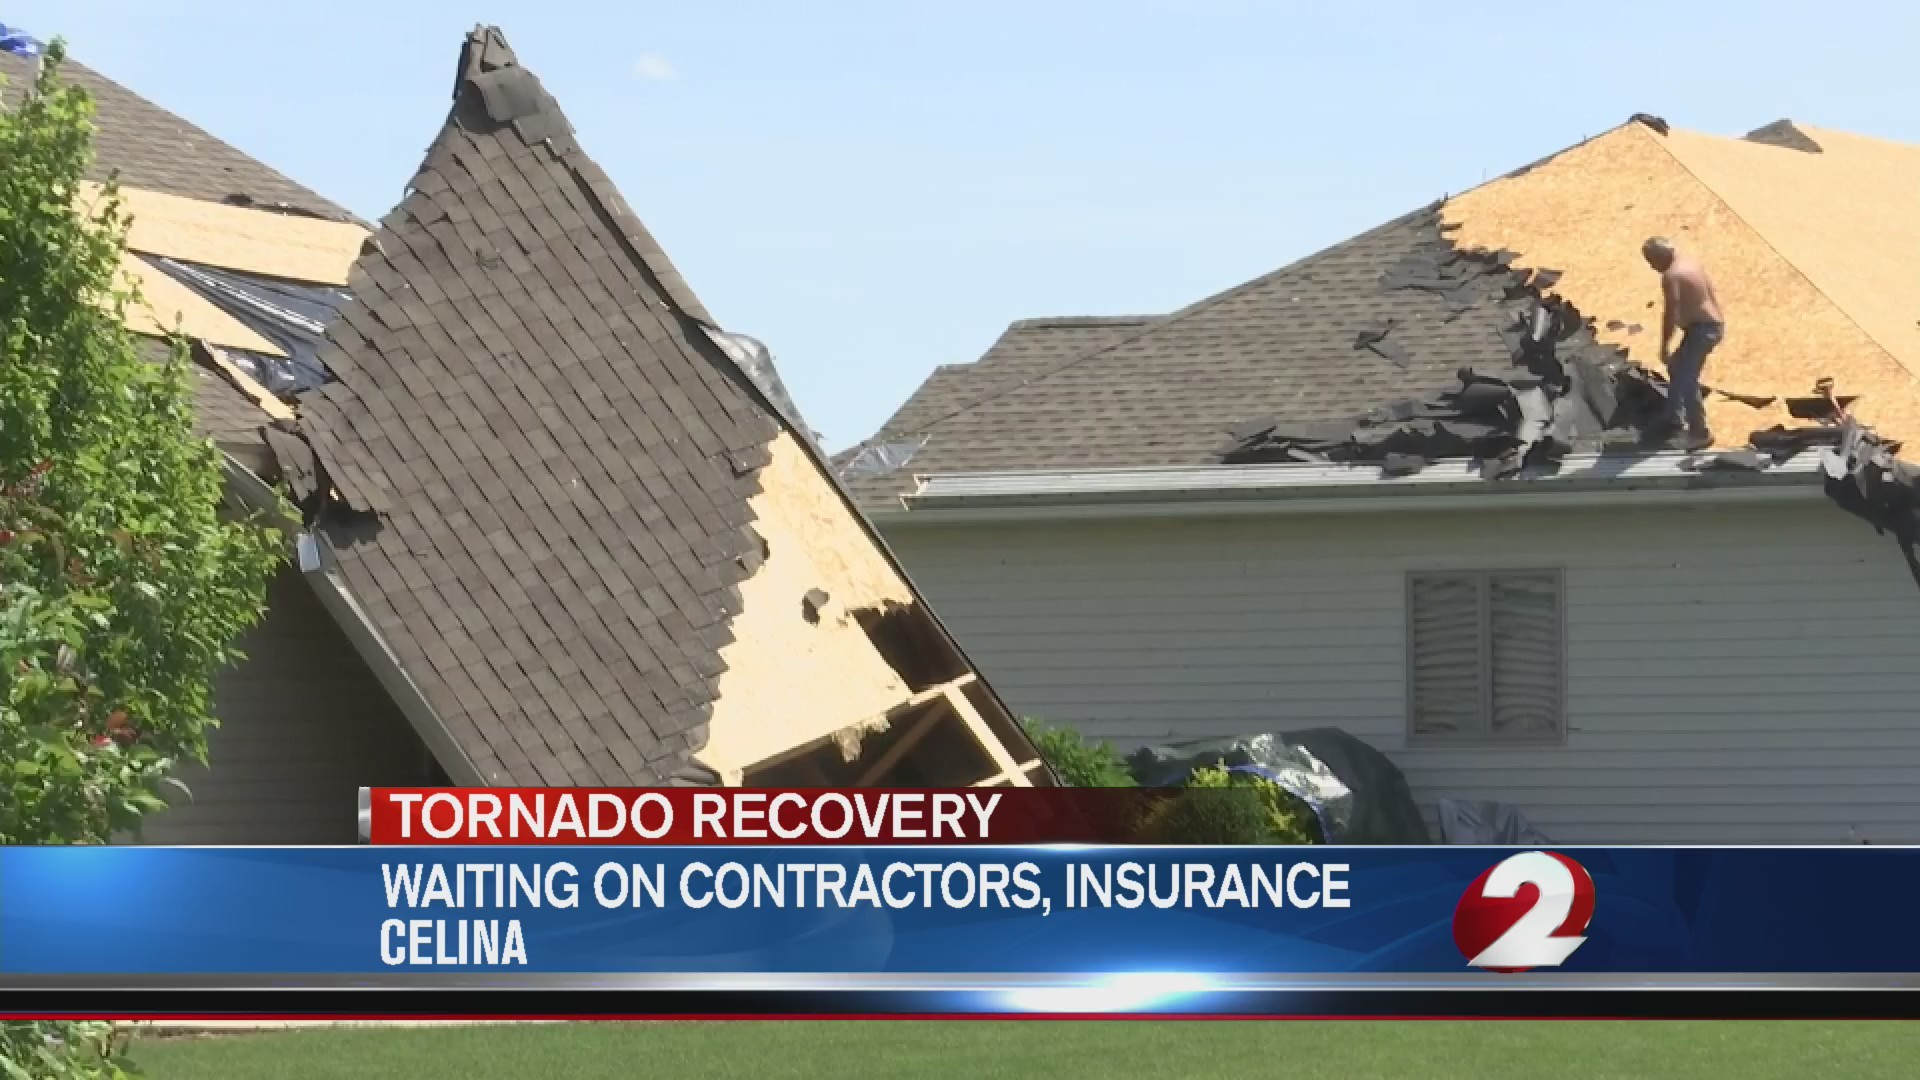 Celina residents face uphill battle with home repairs after tornado outbreak